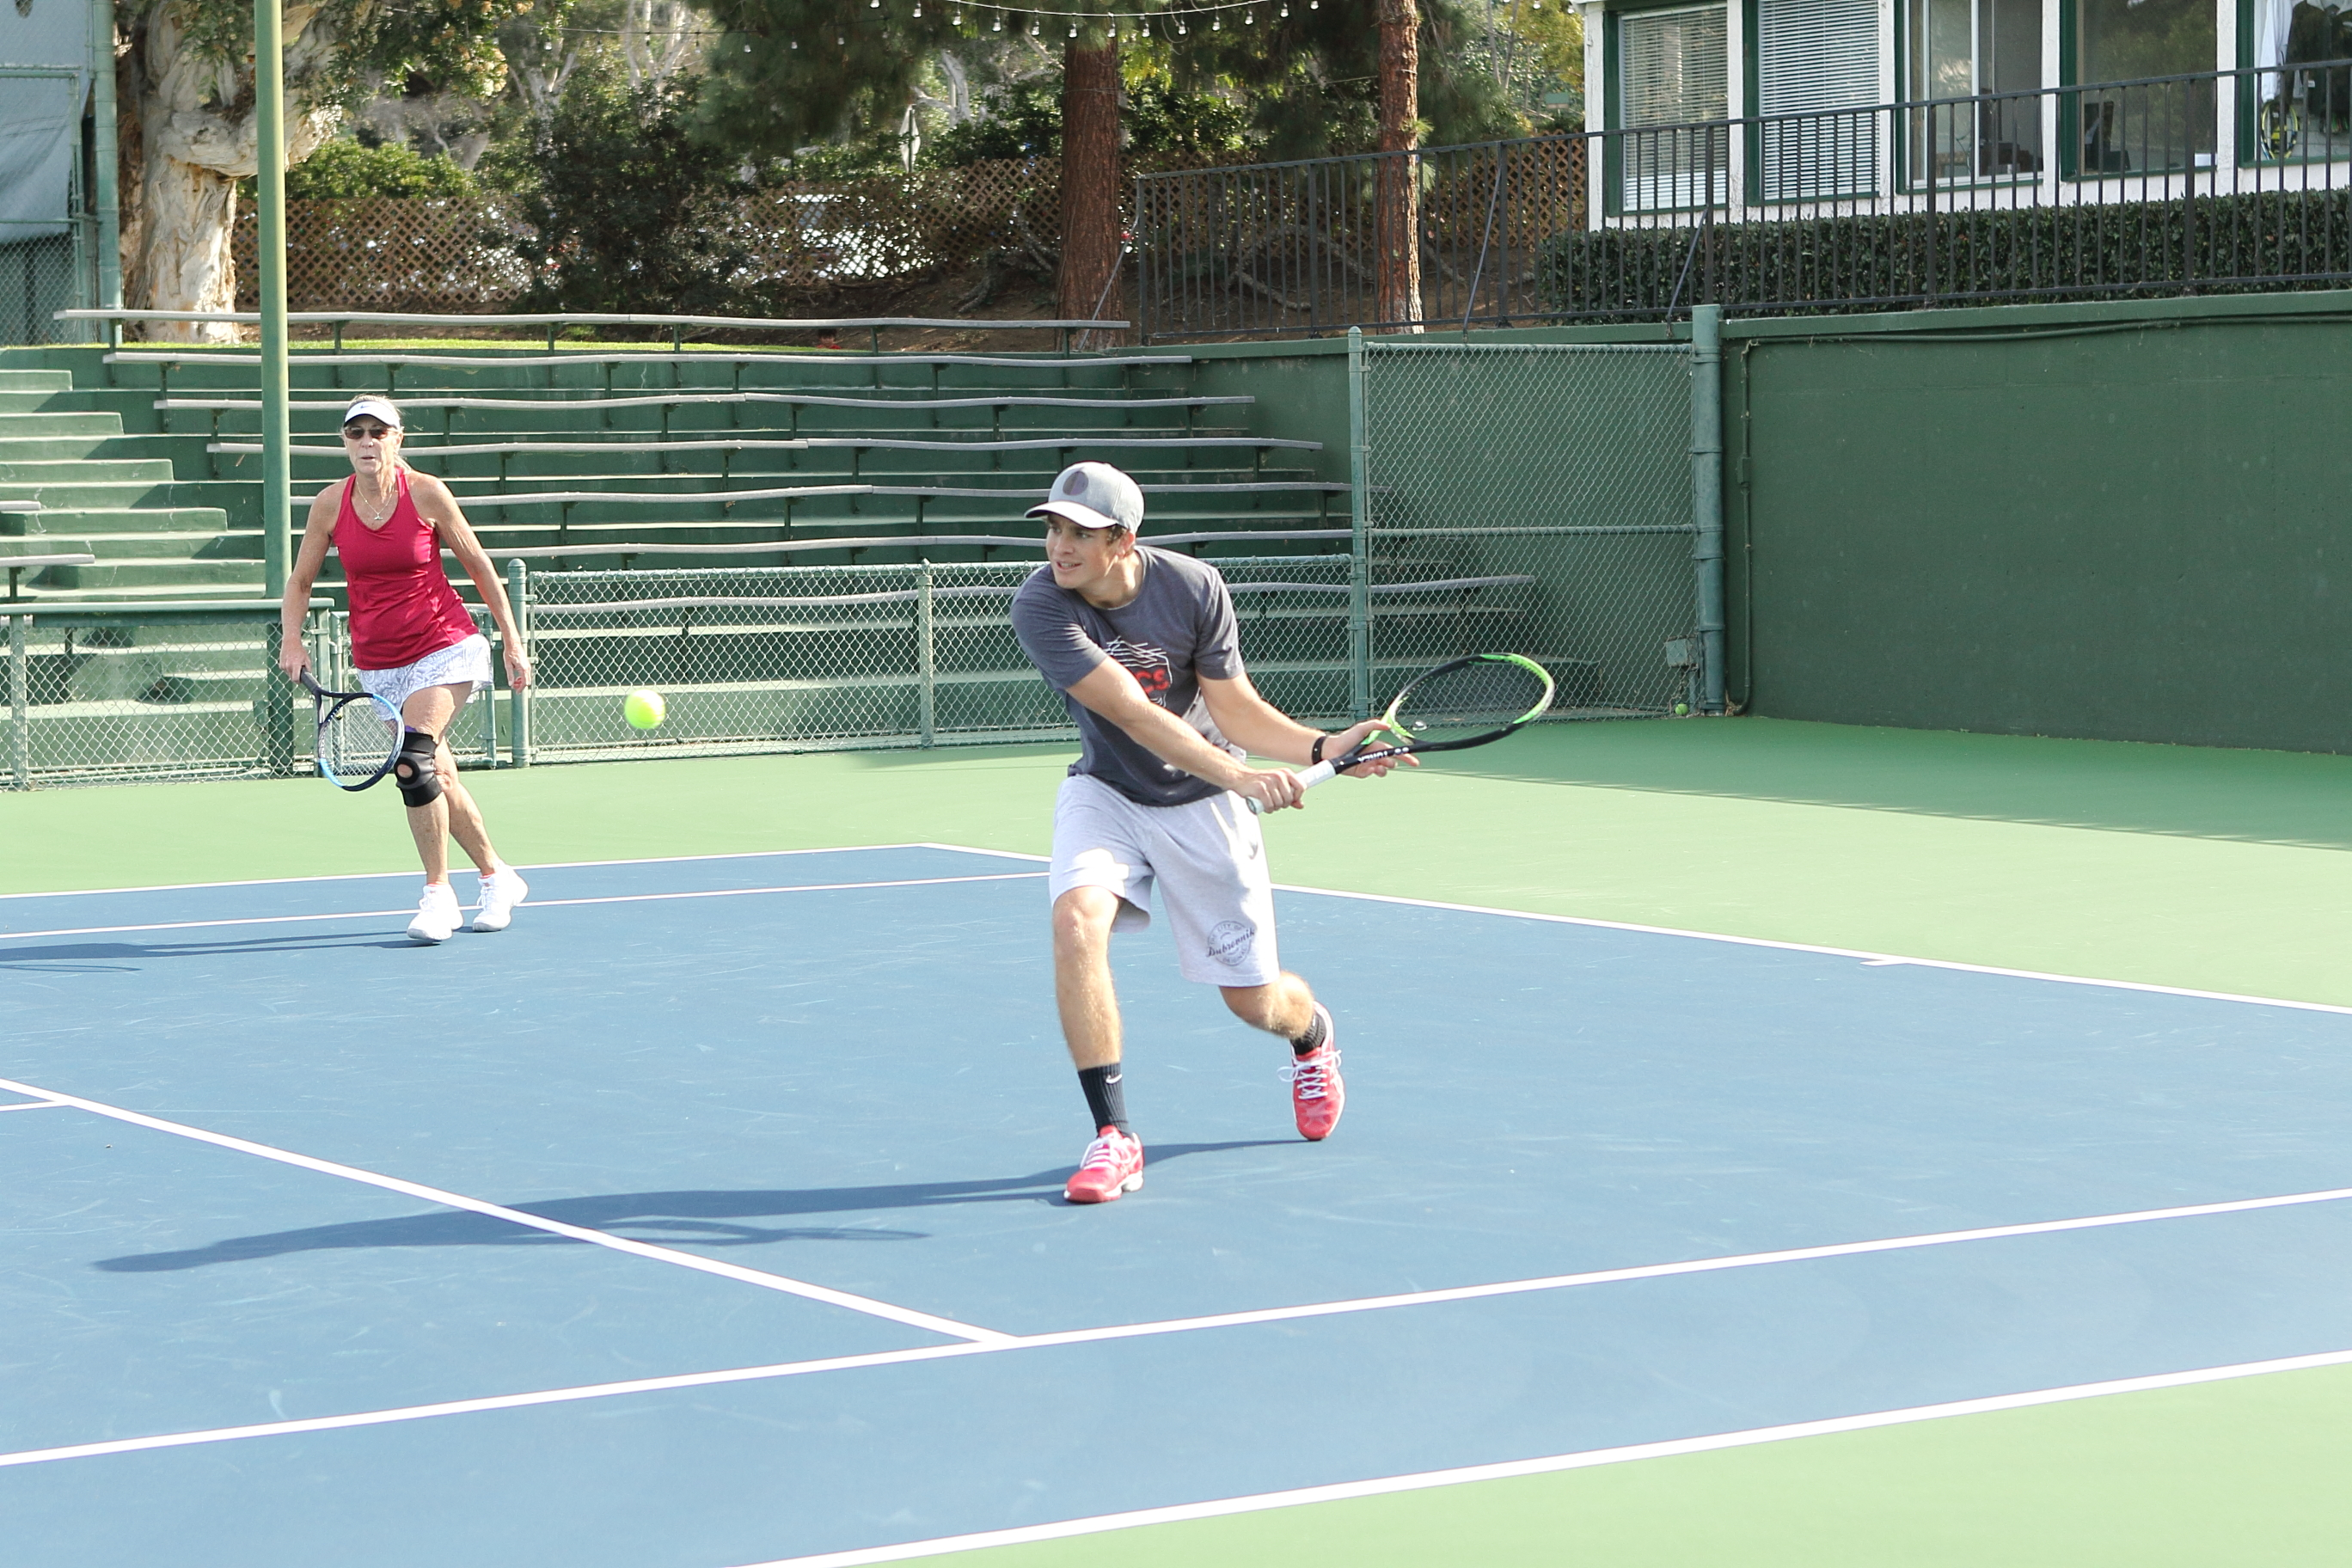 The Sports Archives Blog - The Sports Archives - Why Tennis is a Great Sport for General Exercise